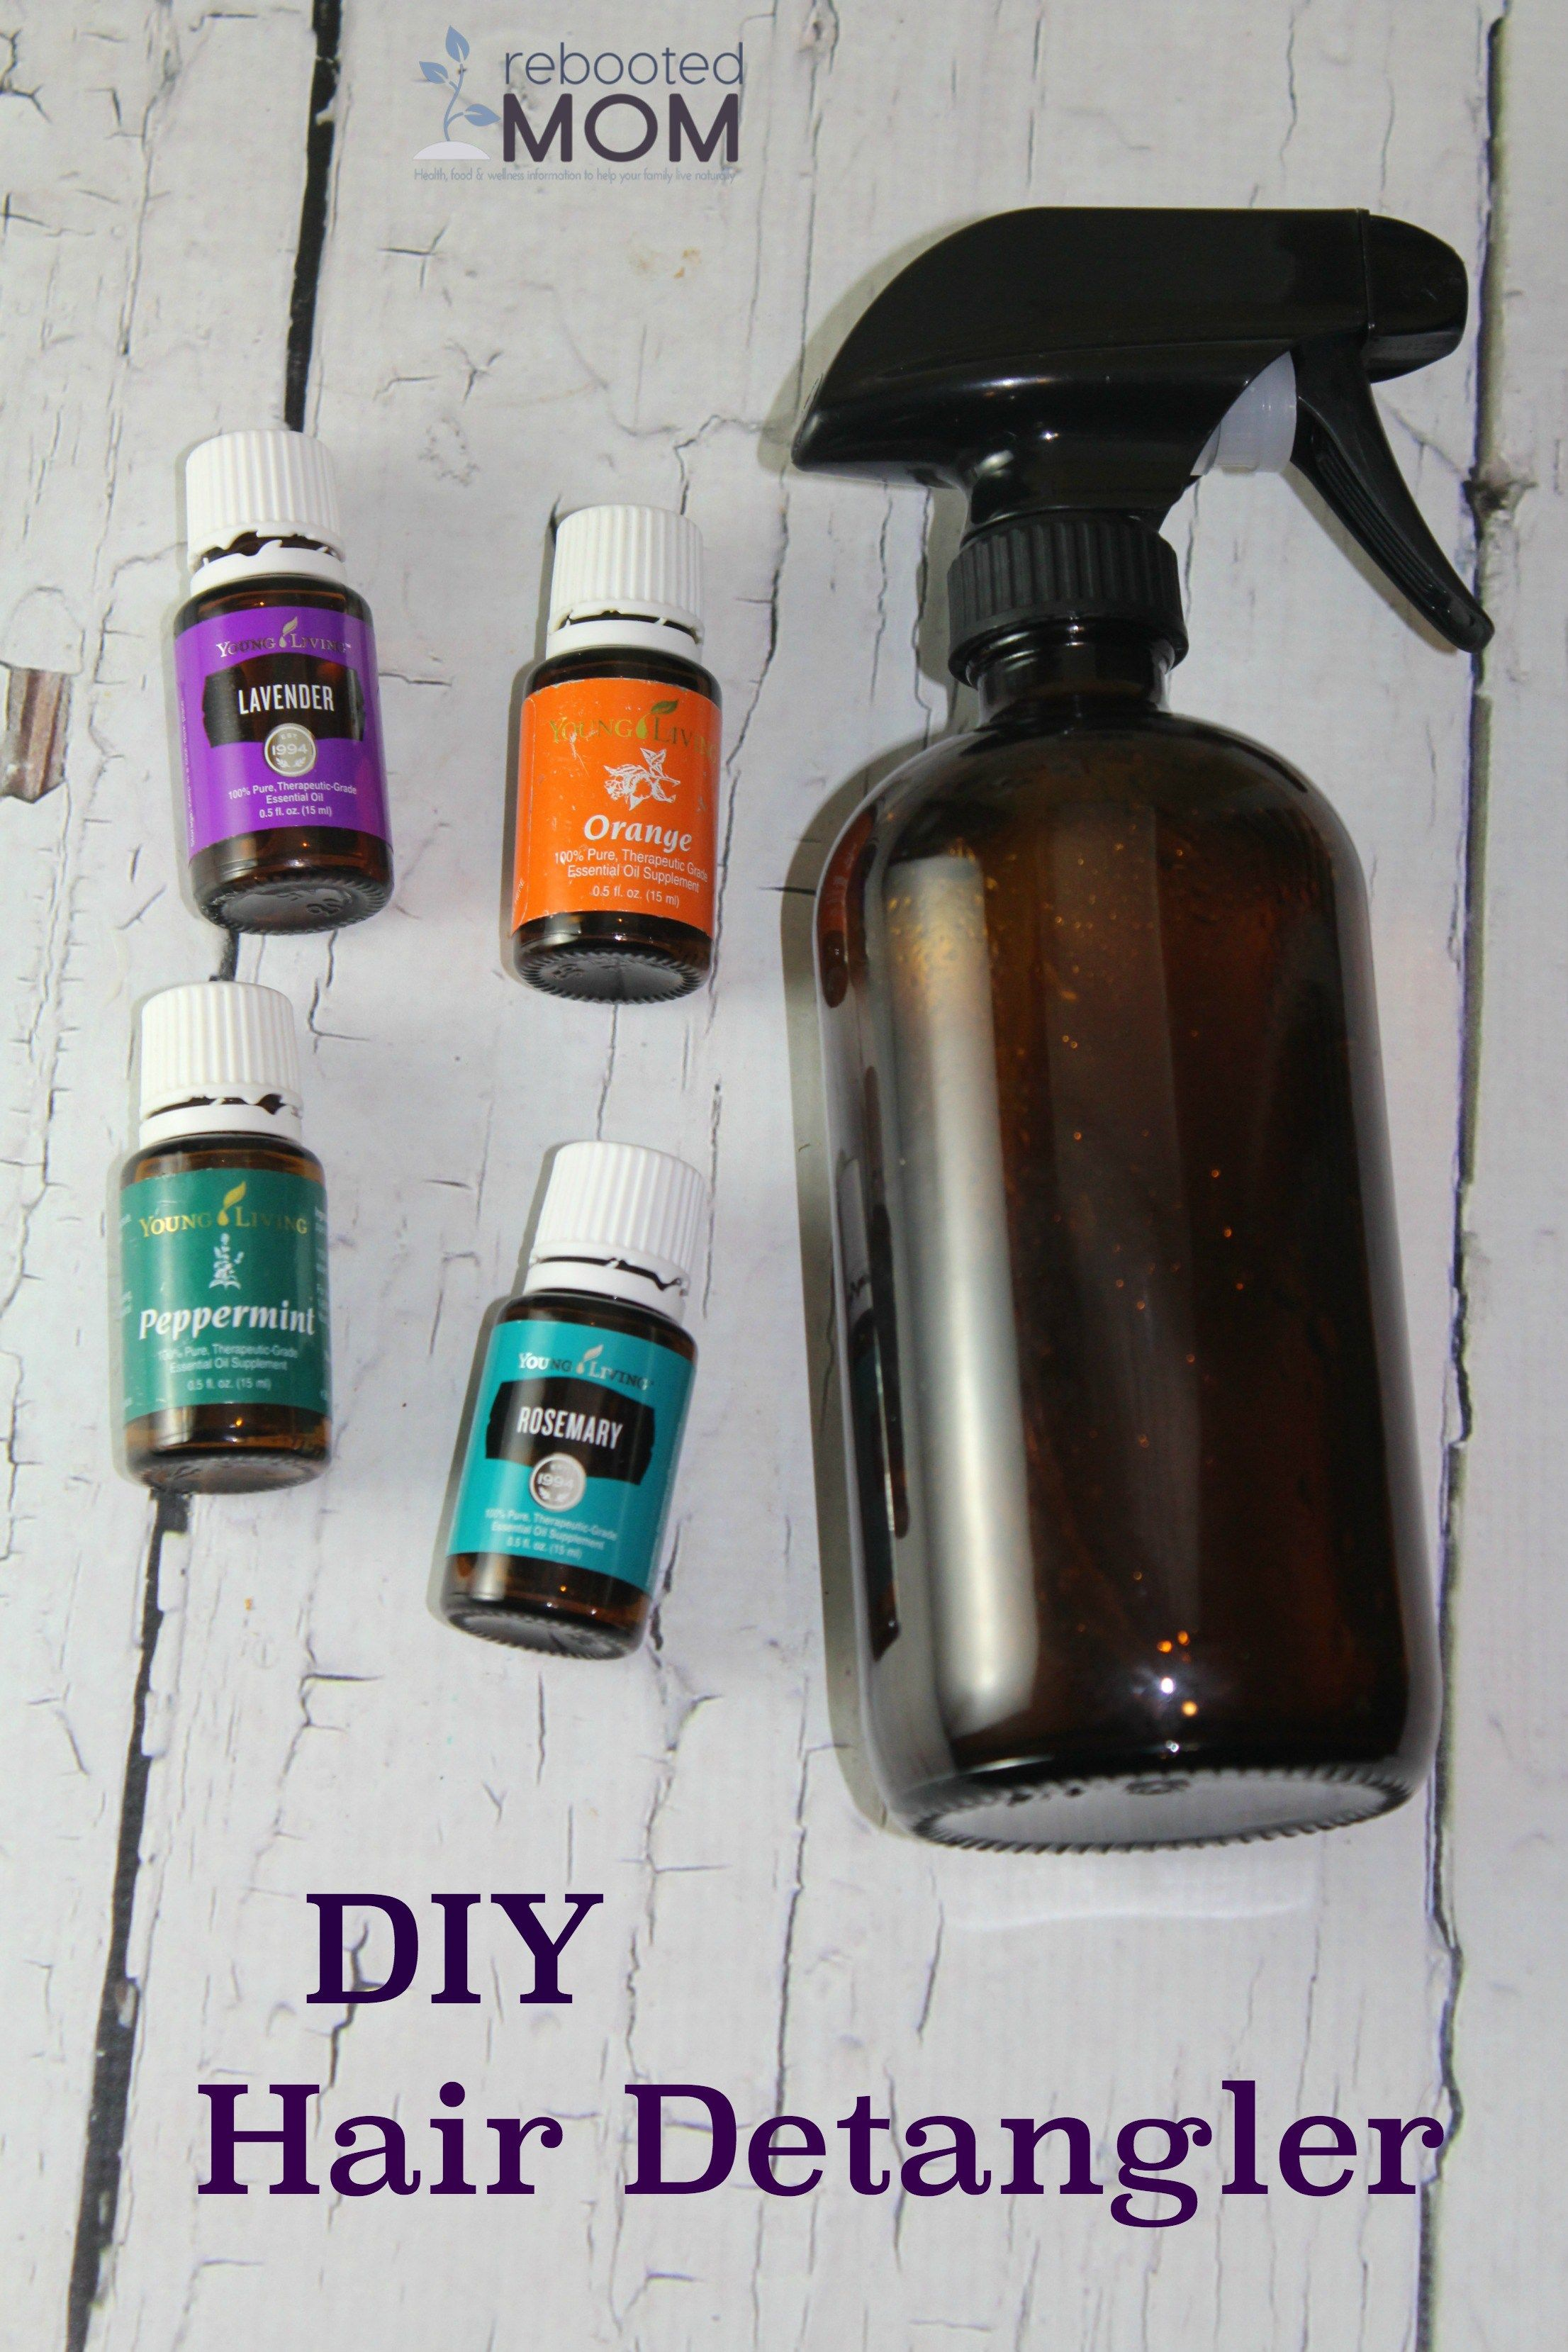 Homemade Diy Hair Detangler With Essential Oils Living Essentials Oils Essential Oils For Kids Diy Essential Oils